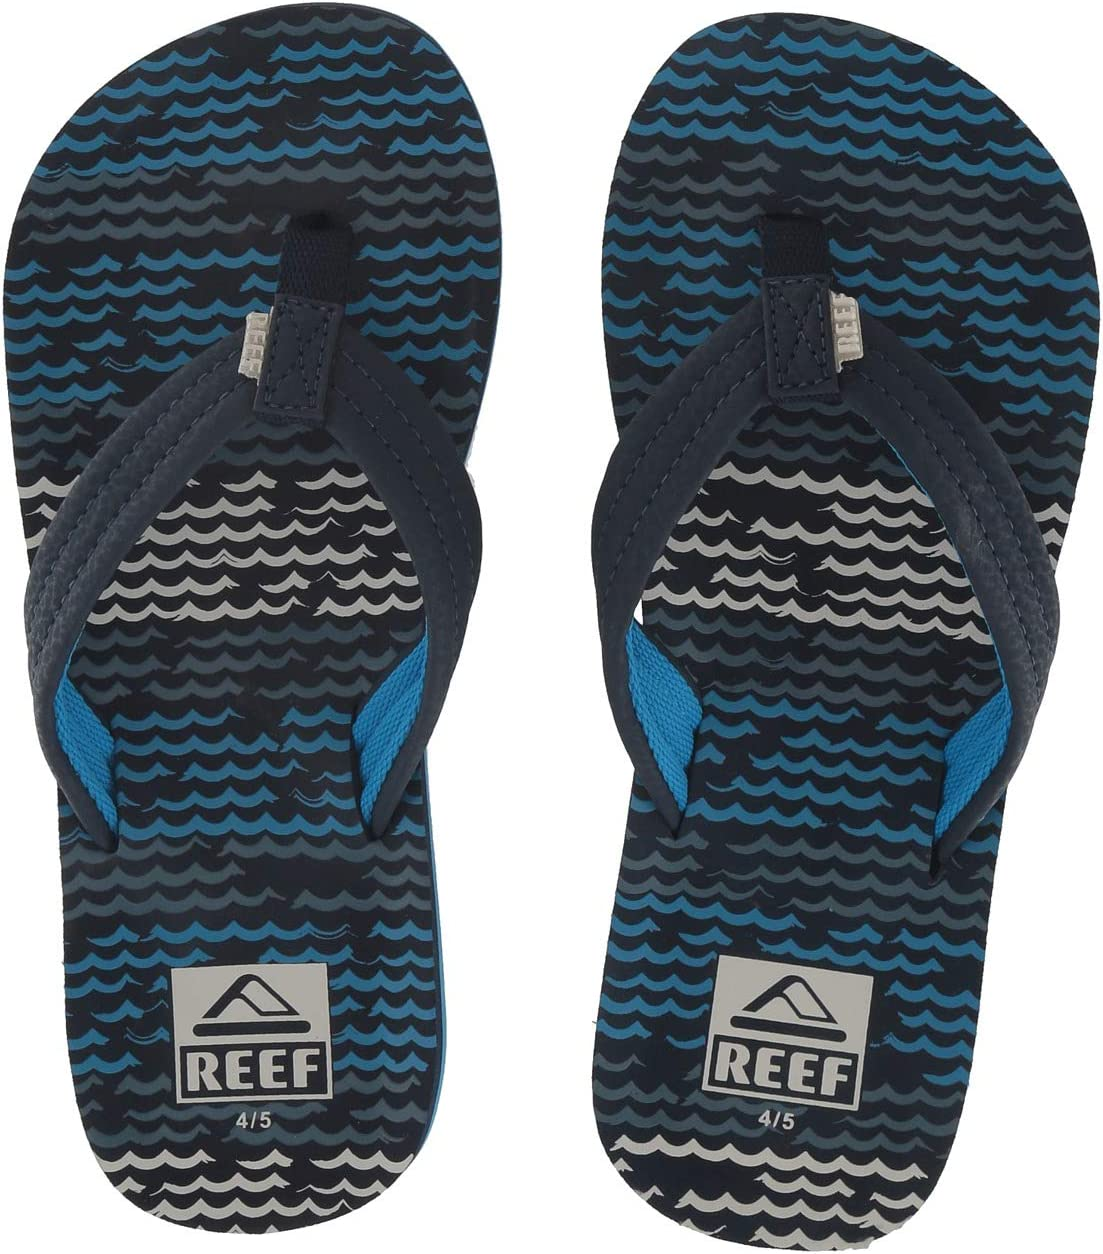 ce44cfa1b39d7 Reef Sandals & Sneakers | Zappos.com